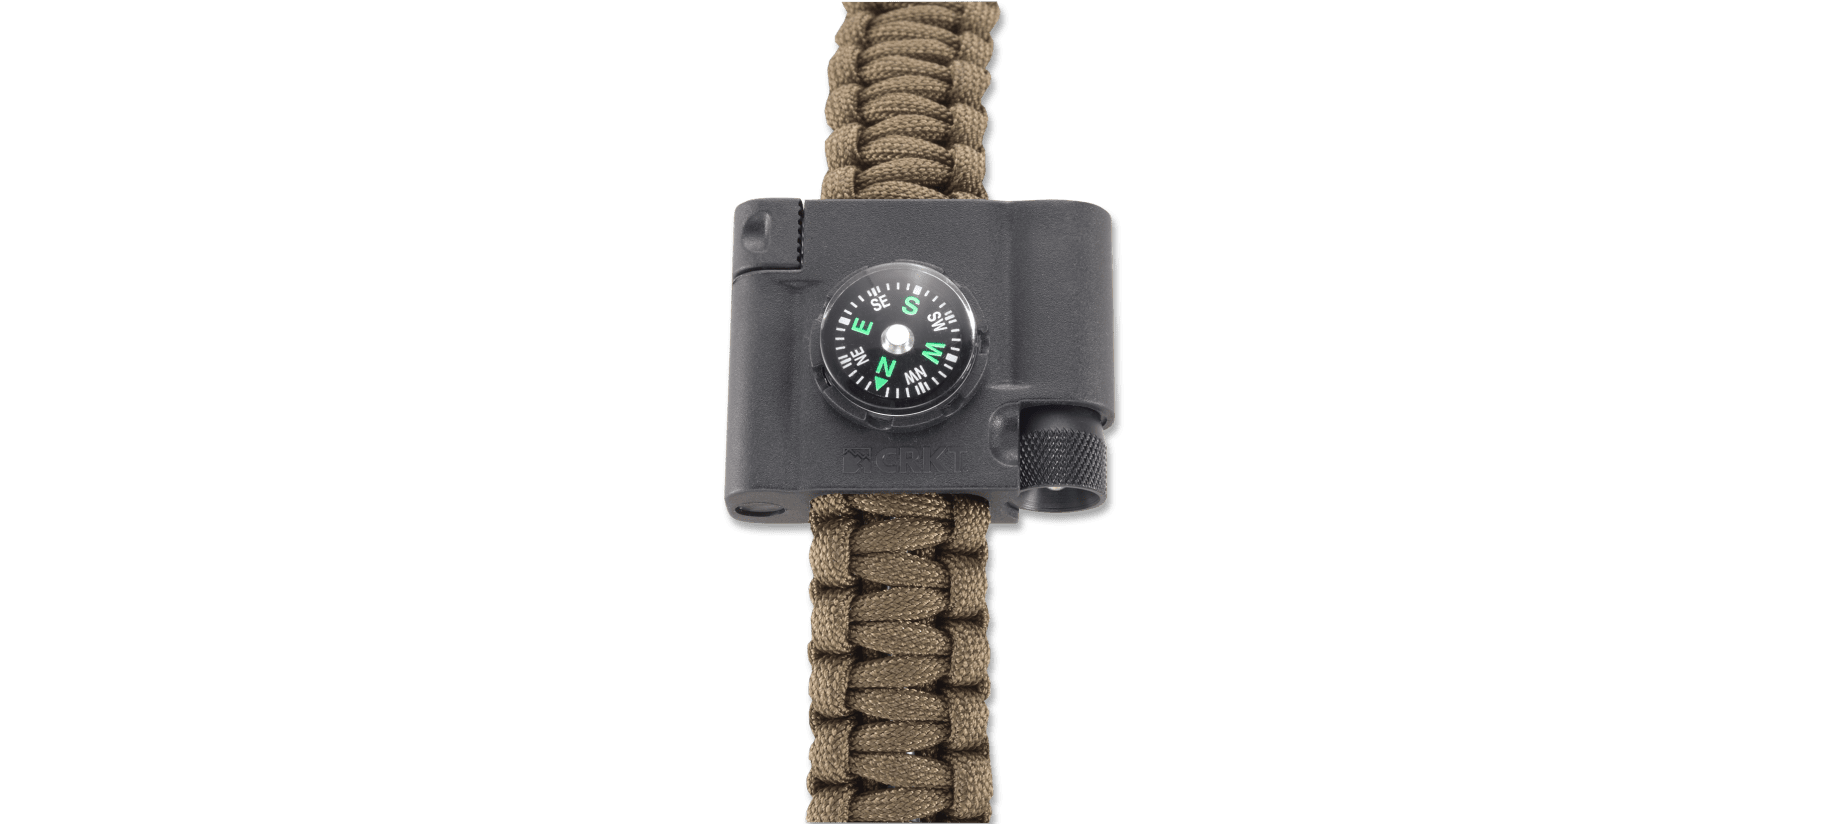 STOKES PARACORD BRACELET ACCESSORY - COMPASS, LED, AND ...